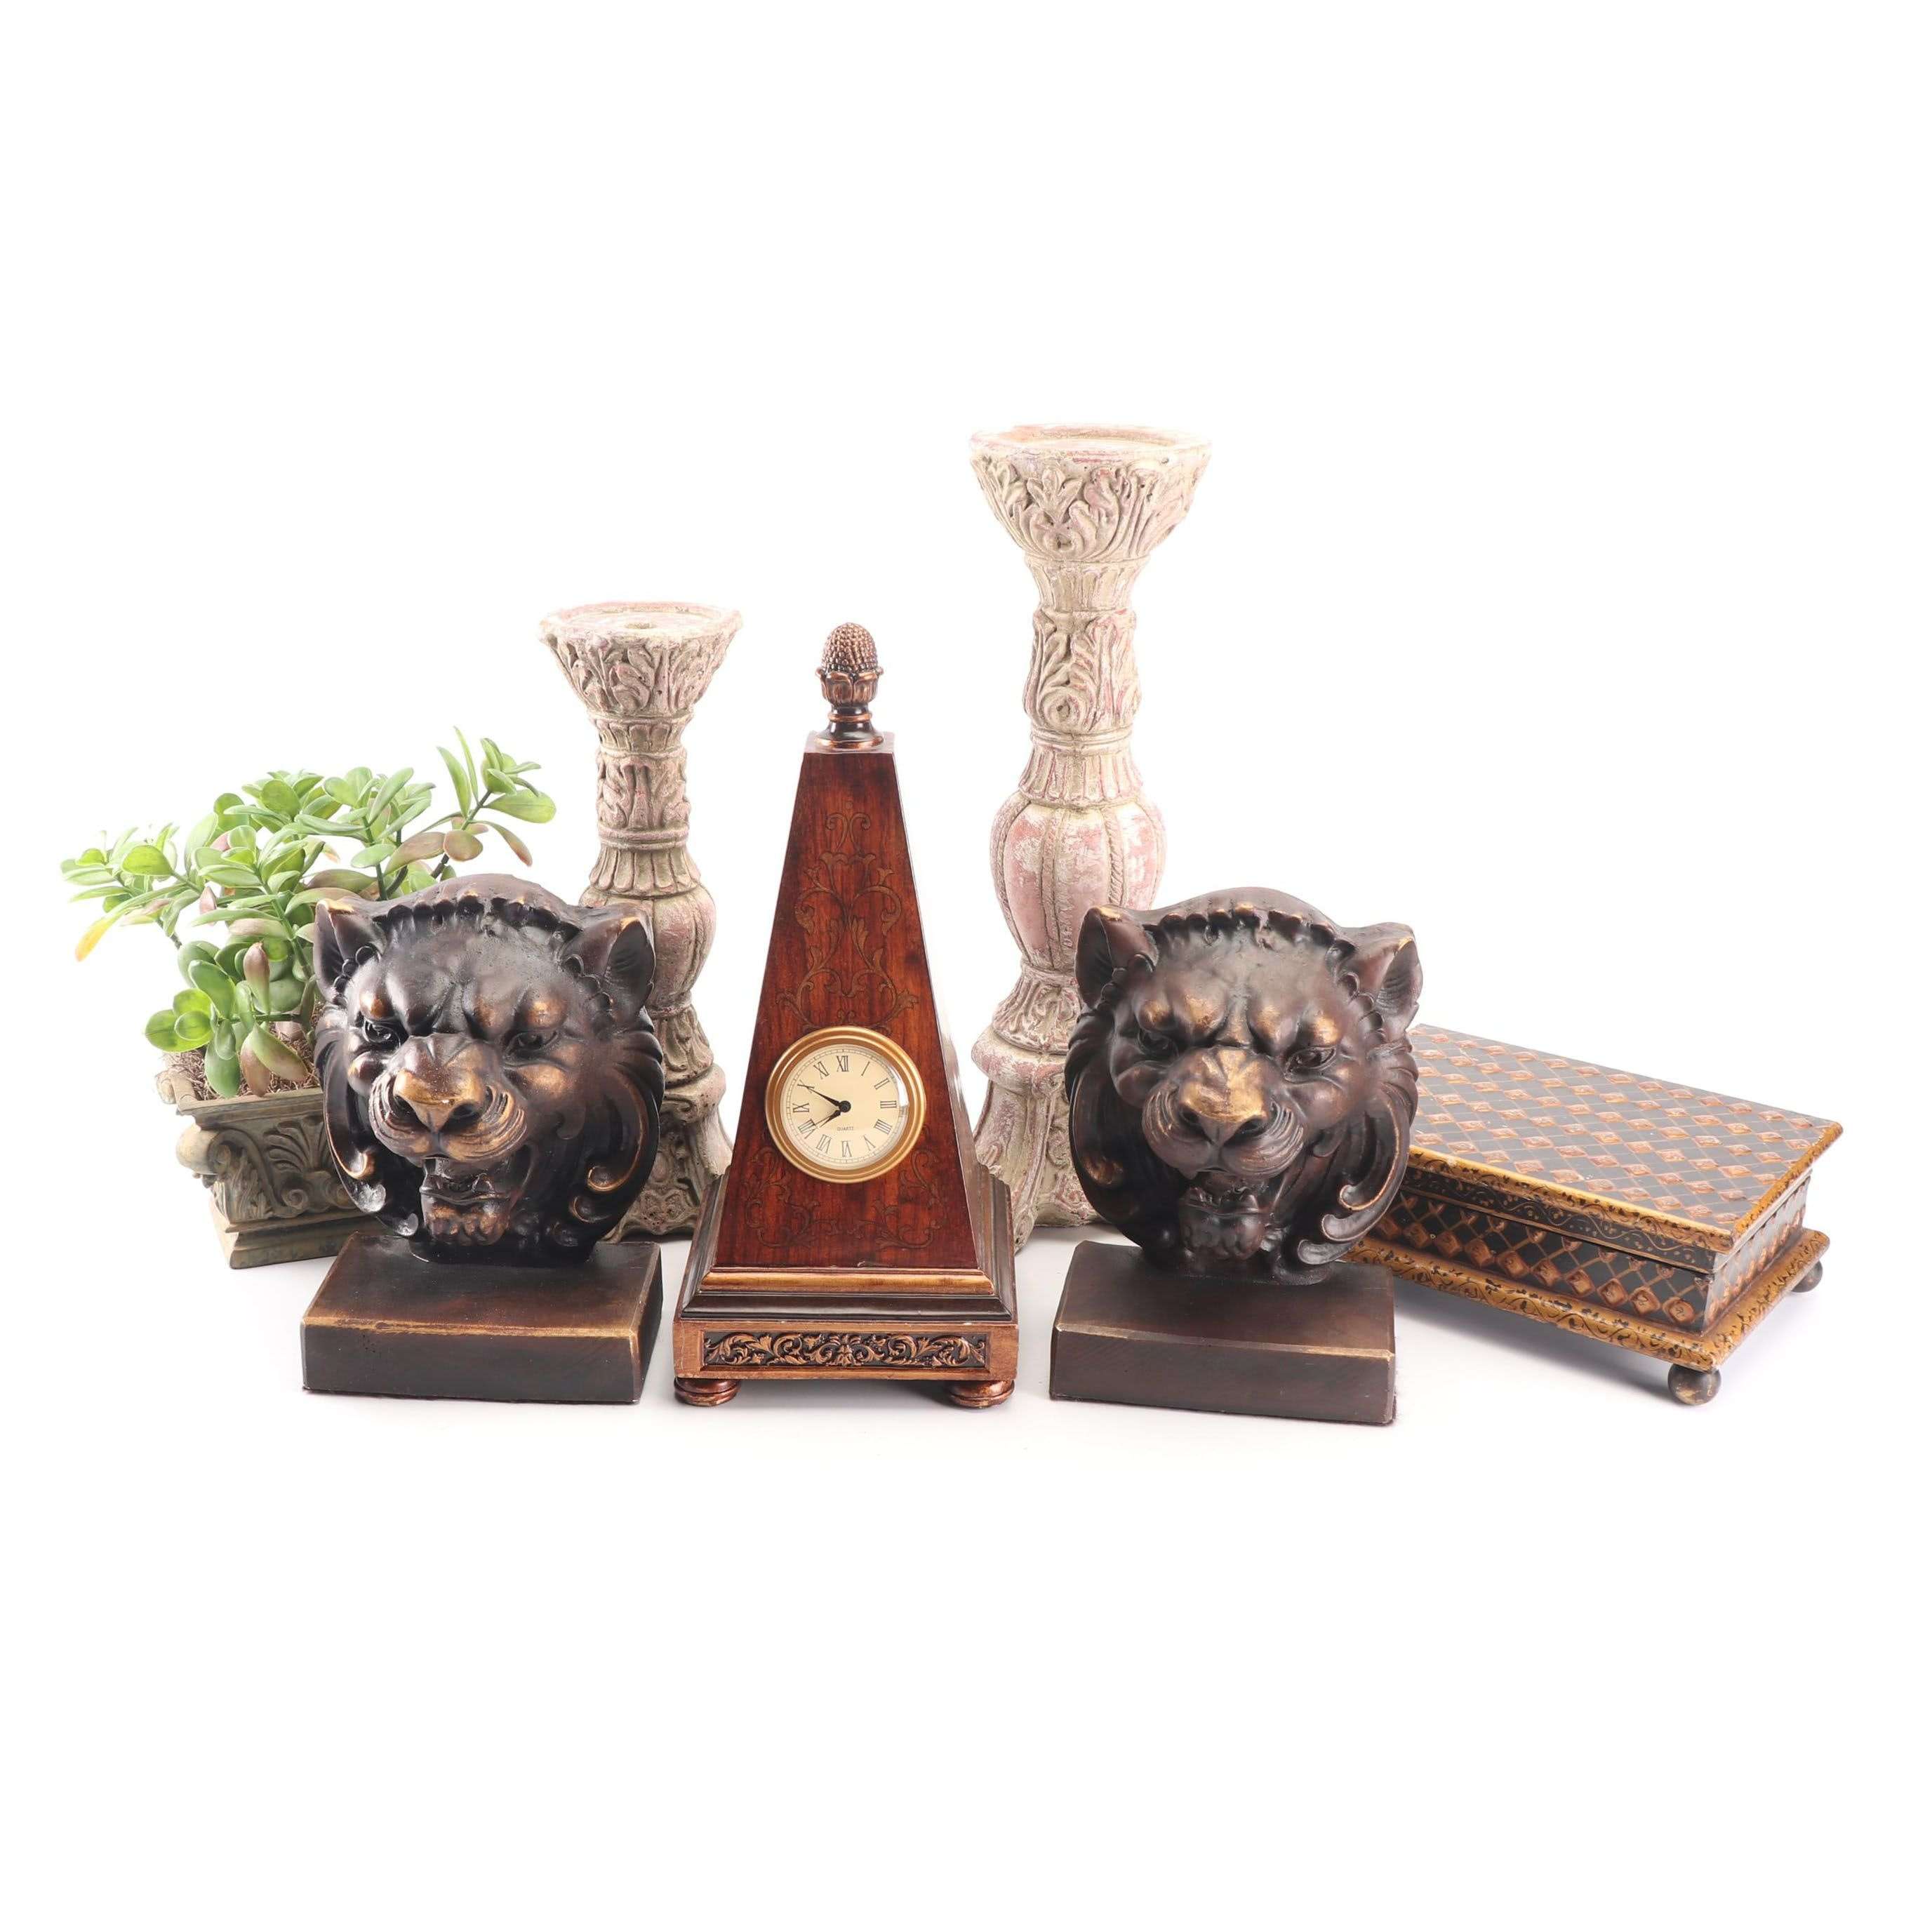 Lion's Head Bookend Pair with Wooden Obelisk Desk Clock and Other Office Décor